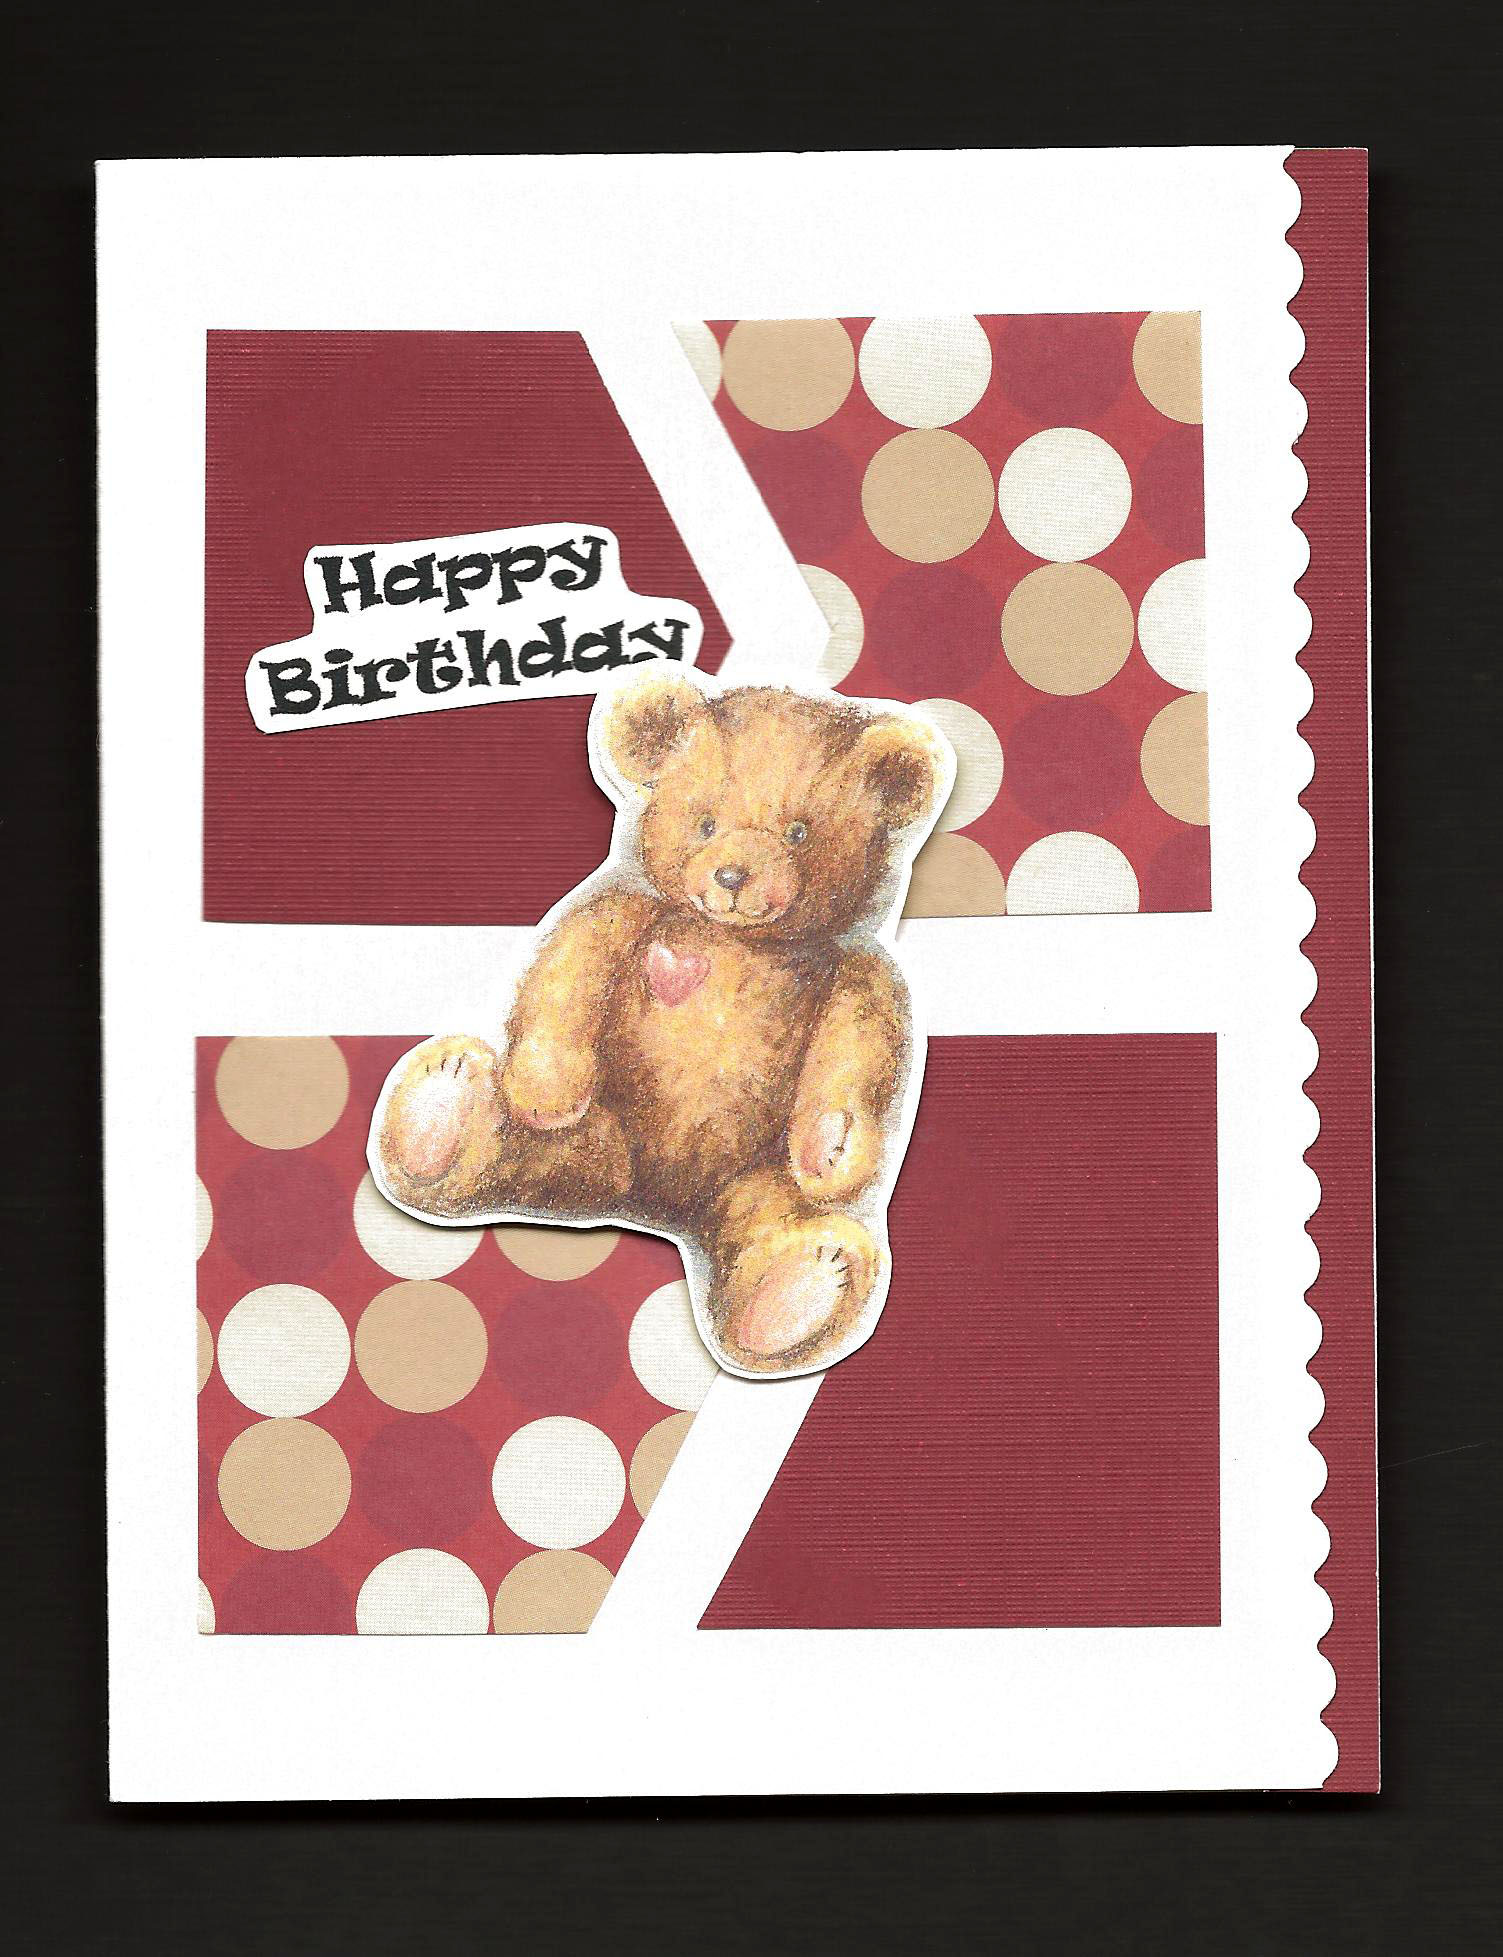 Make a card for him greeting card ideas aunt annies crafts four patch greeting card with teddy bear embellishment kristyandbryce Images